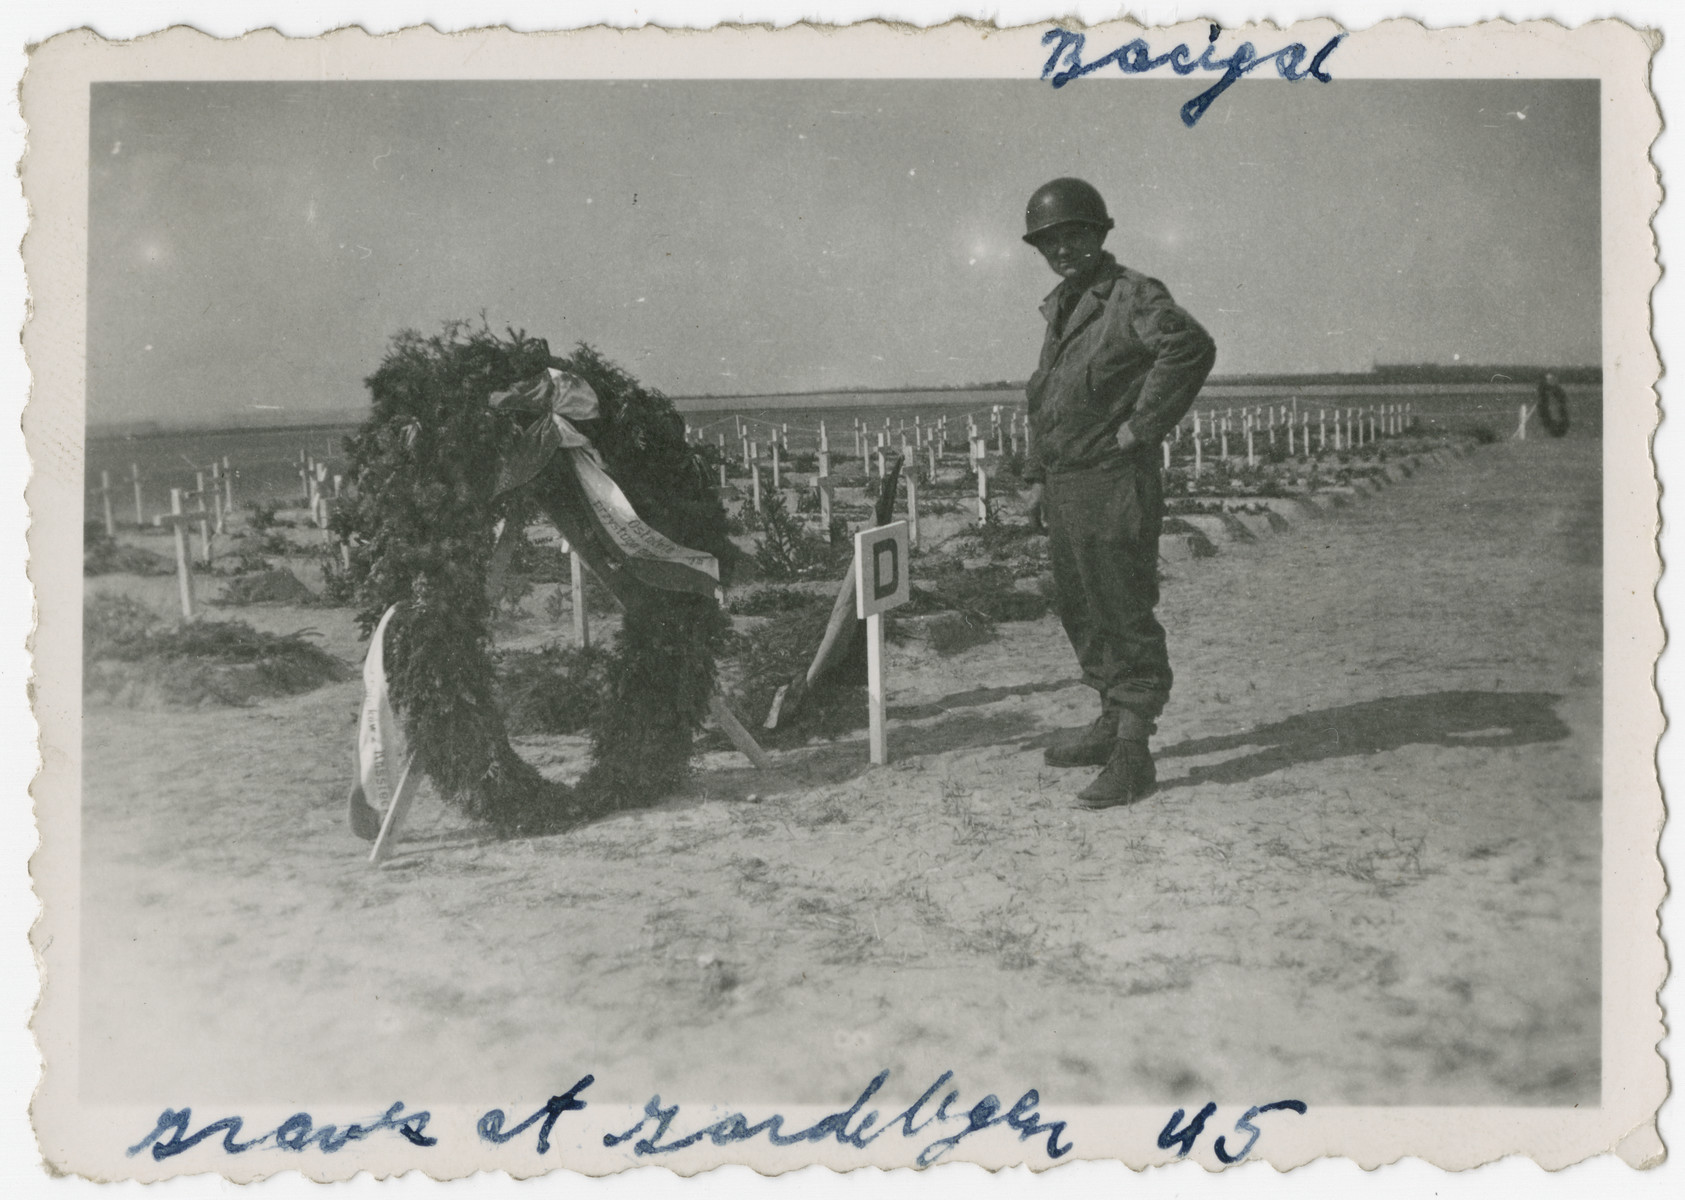 An American soldier poses next to a wreath placed by the graves of the victims of the Gardelegen atrocity.